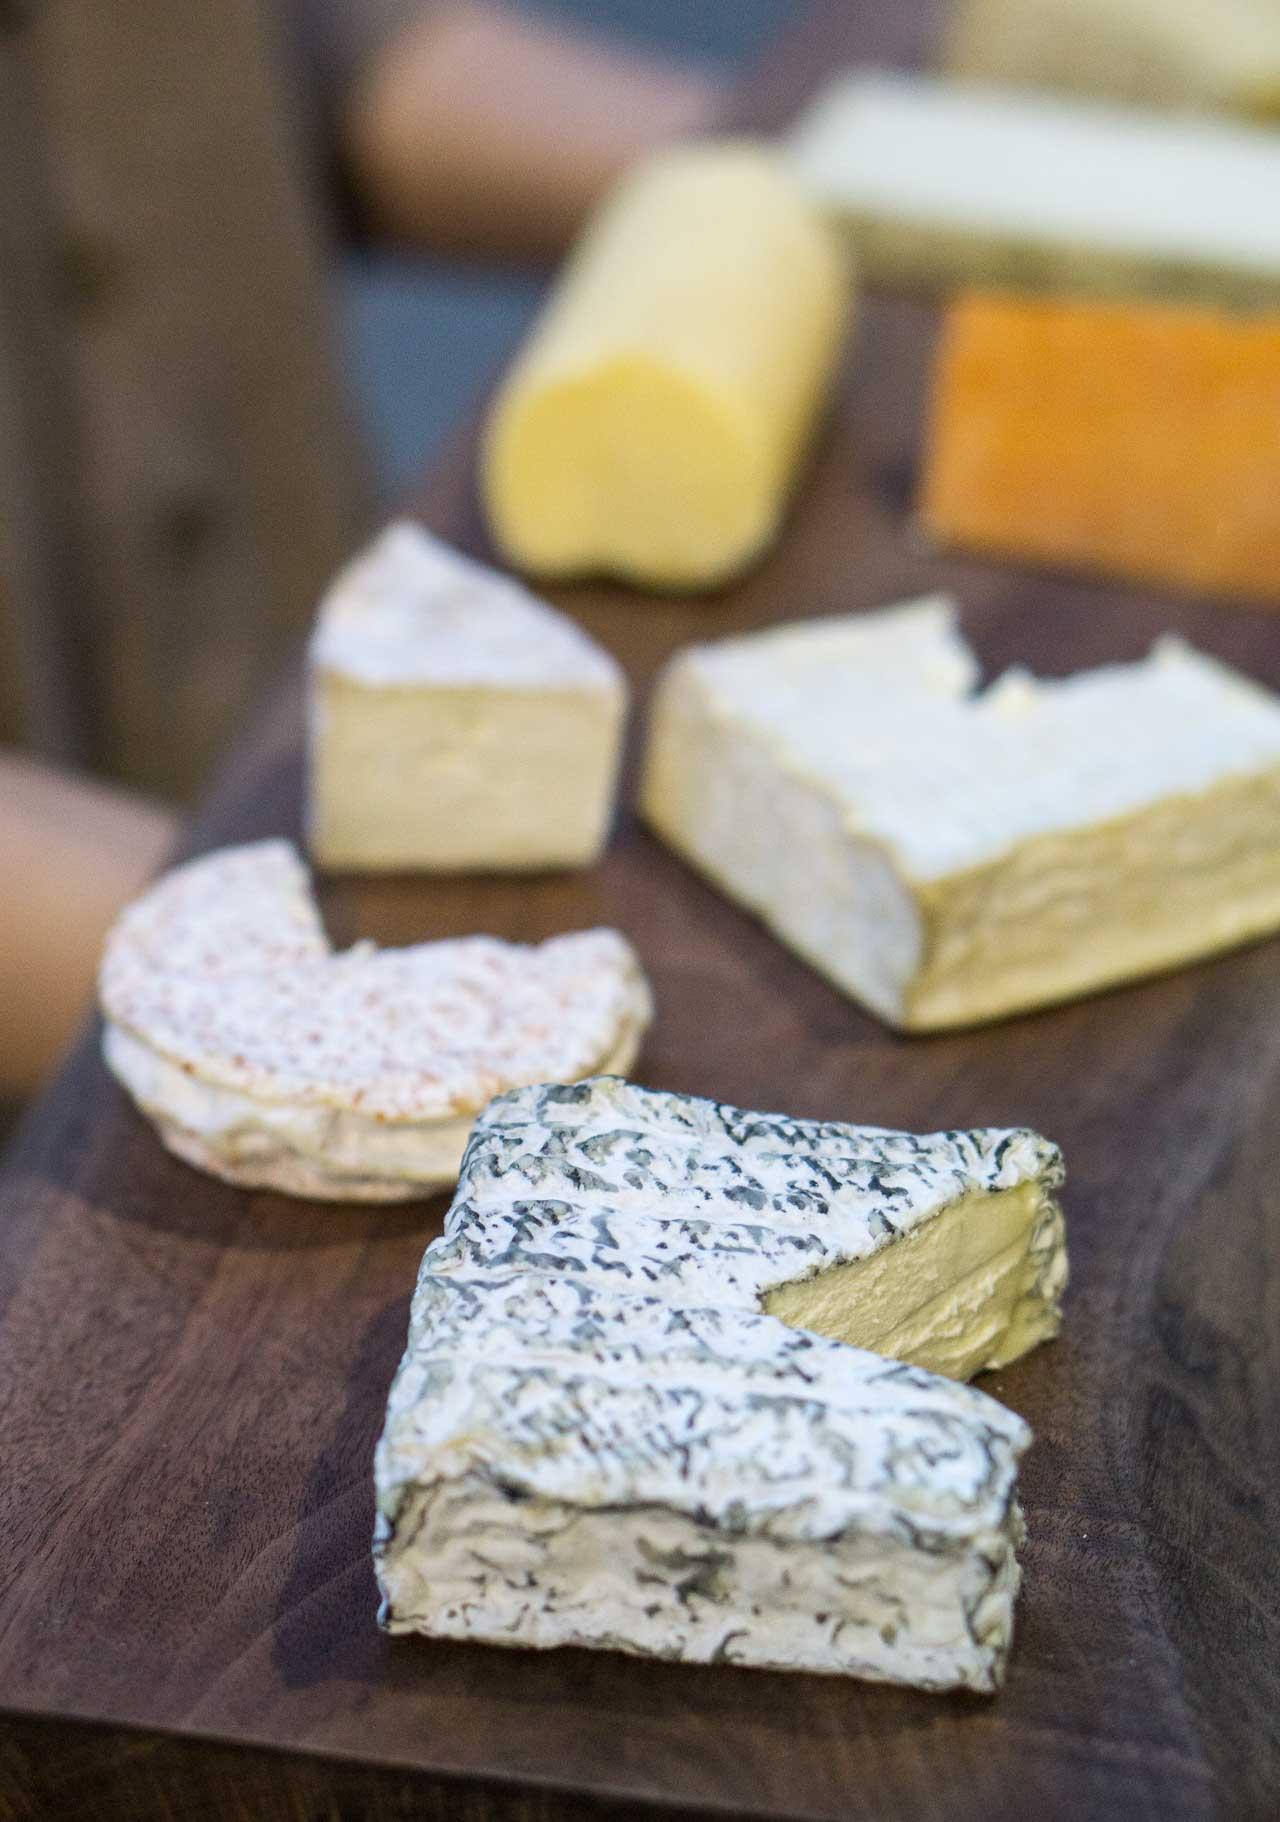 A visit to the cheese ripening caves in Brooklyn, New York.